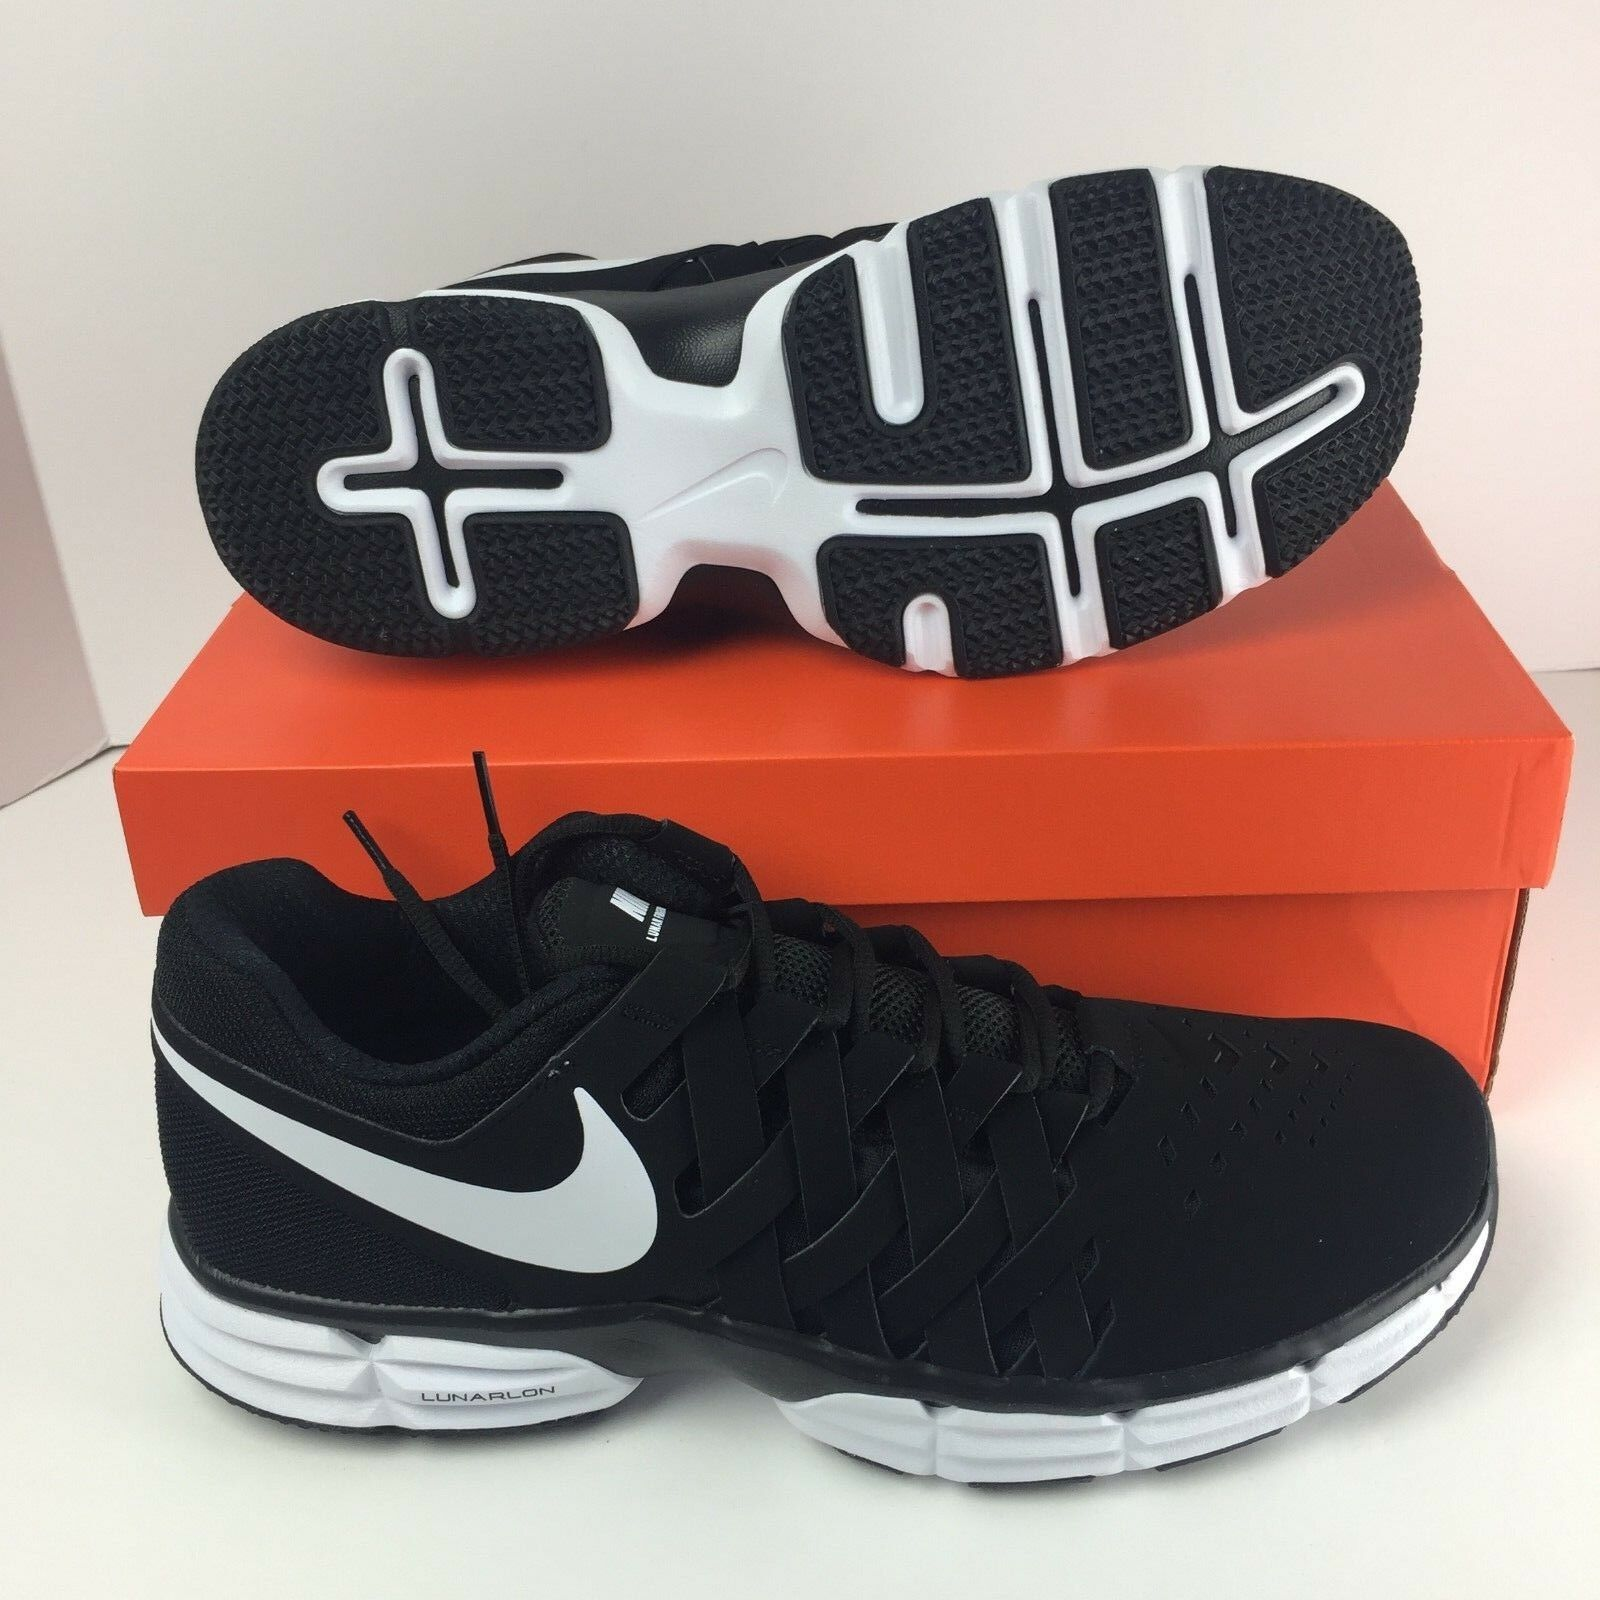 32da51d841 Nike Fingertrap Tr Black 898066-001 Training shoes Men's Lunar White ...